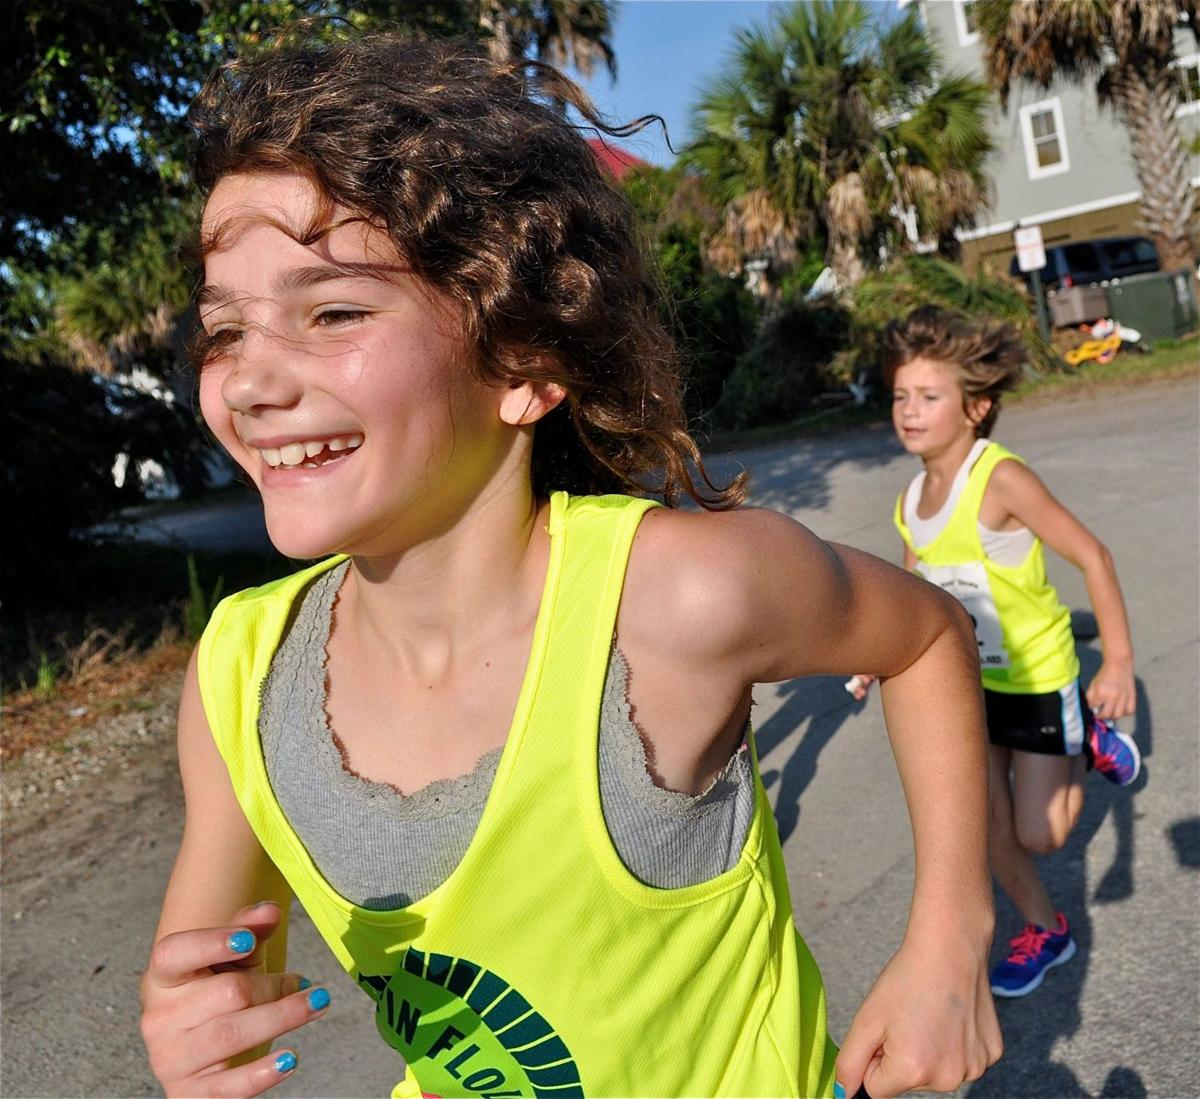 Study: Despite improvements, South Carolina still ranks at the bottom in child well-being